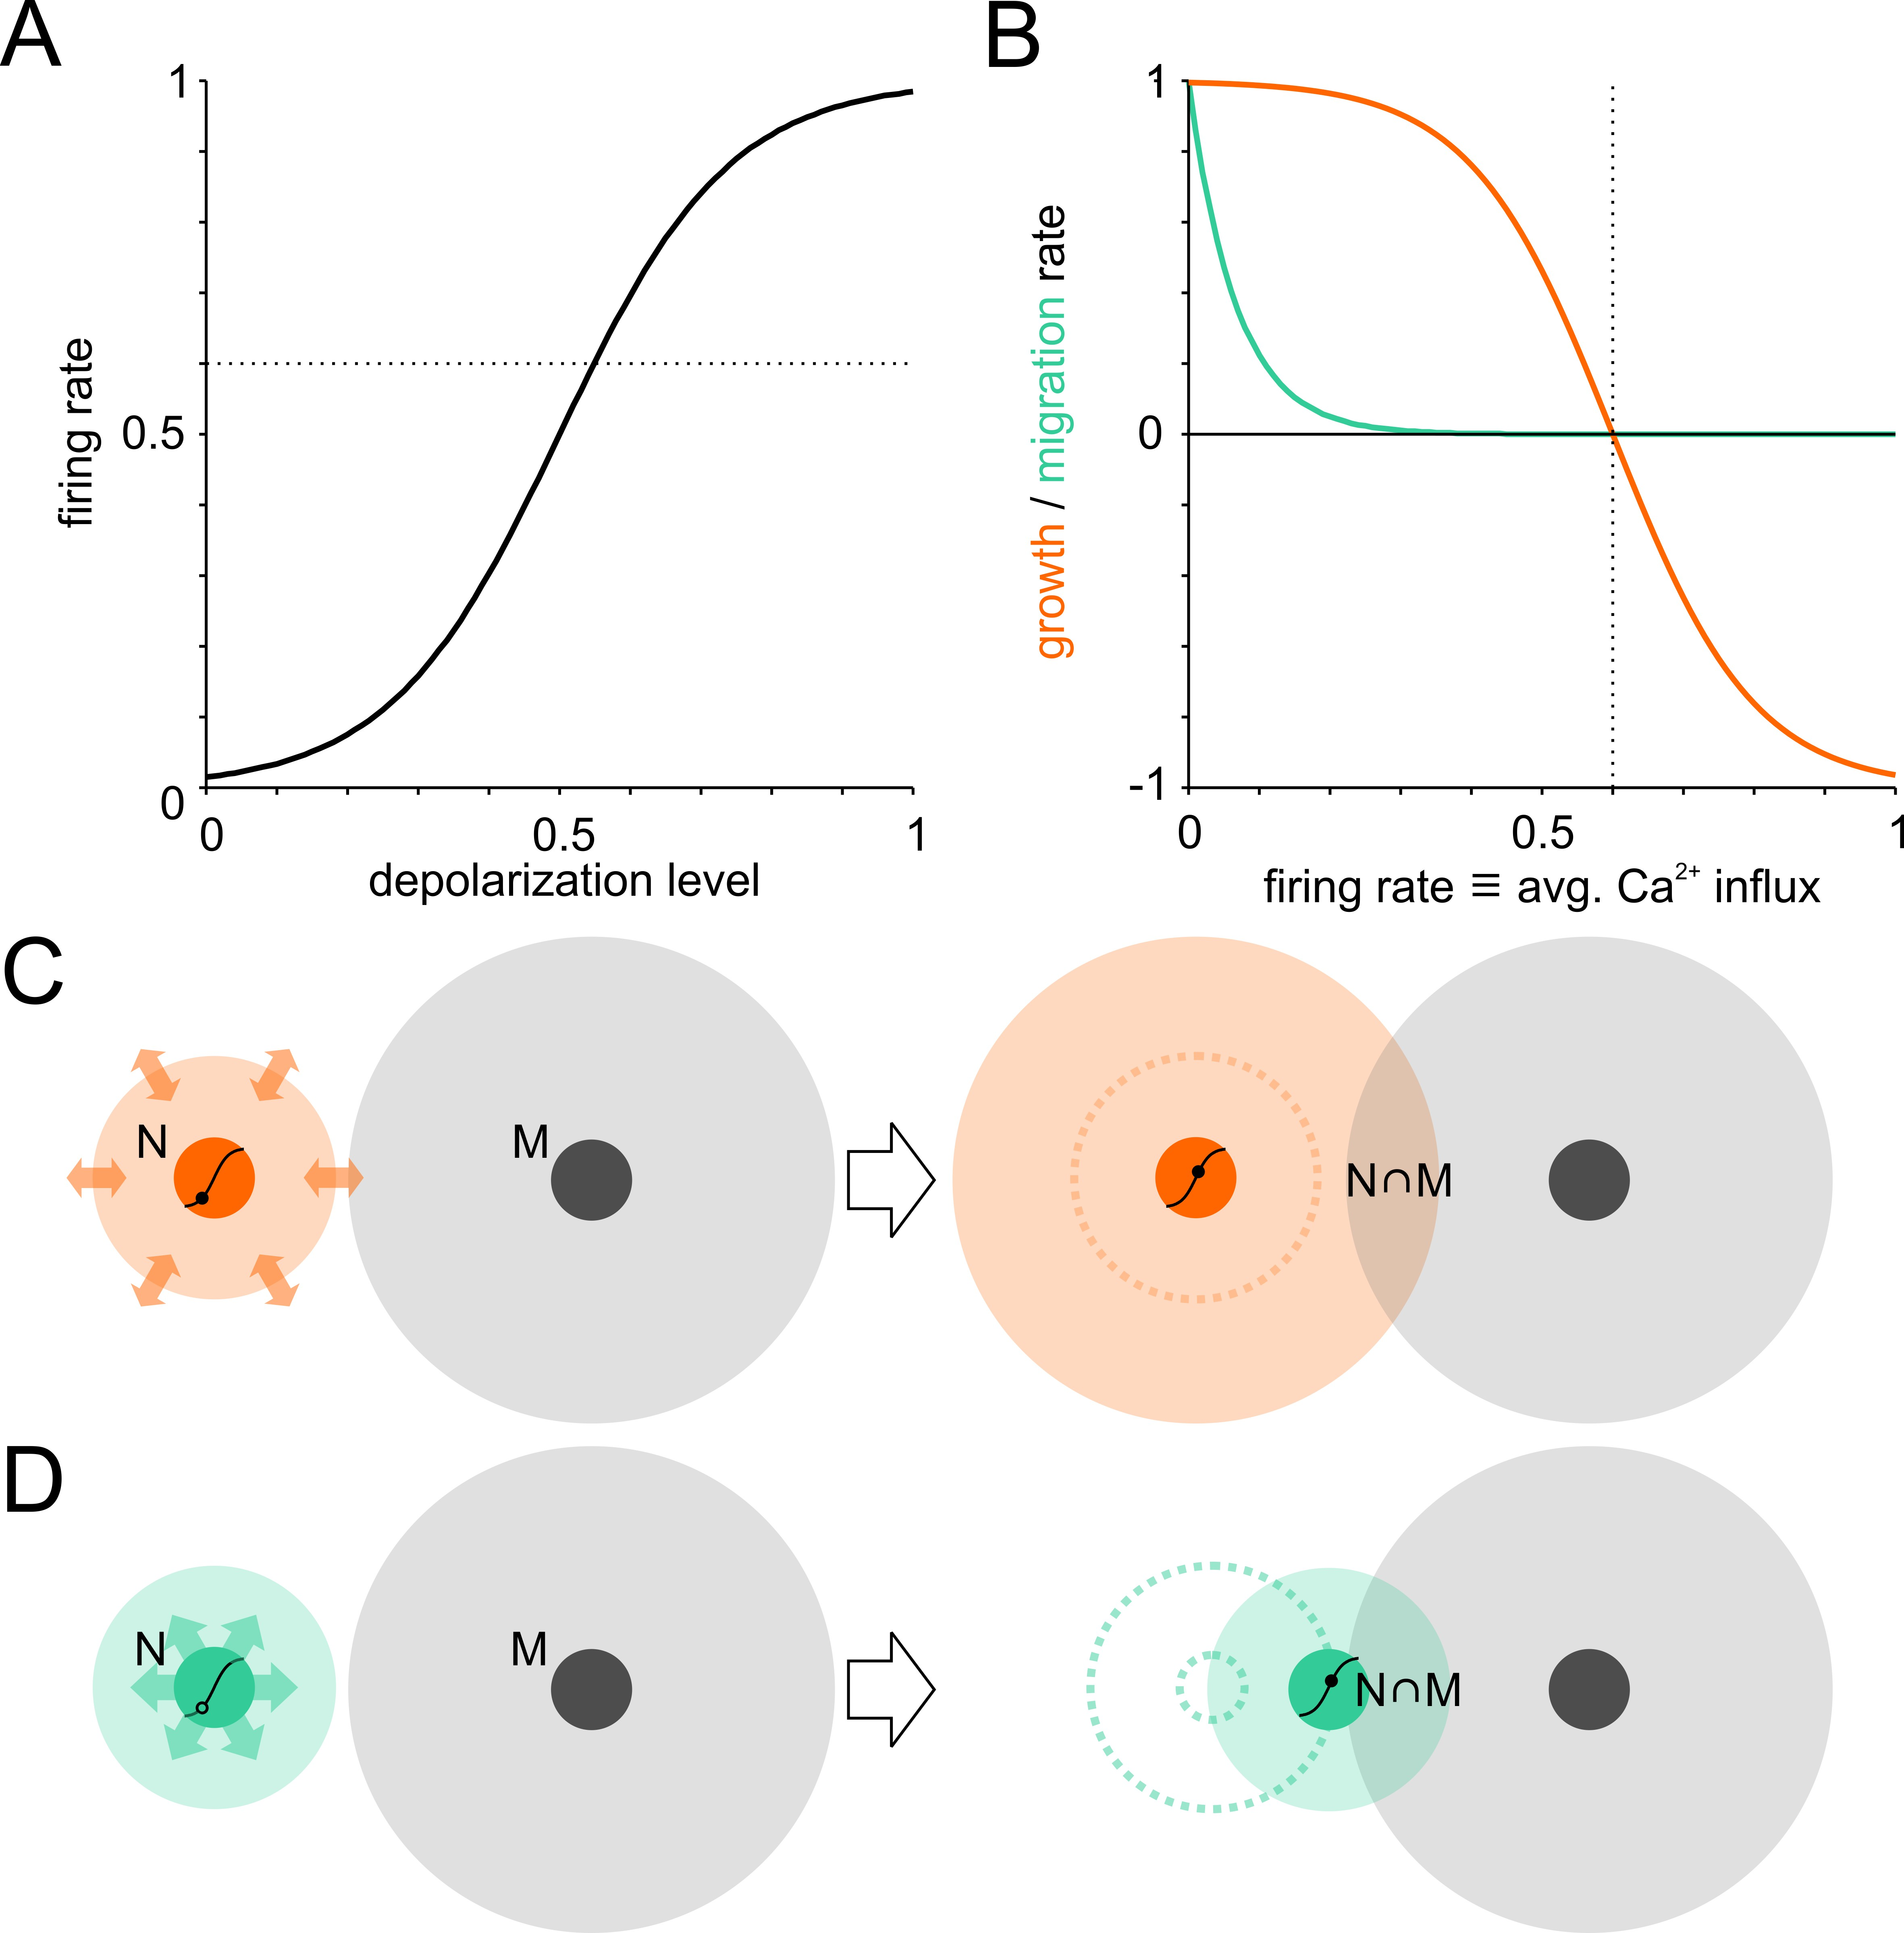 Self Organization Of Modular Network Architecture By Activity Dependent Neuronal Migration And Outgrowth Elife